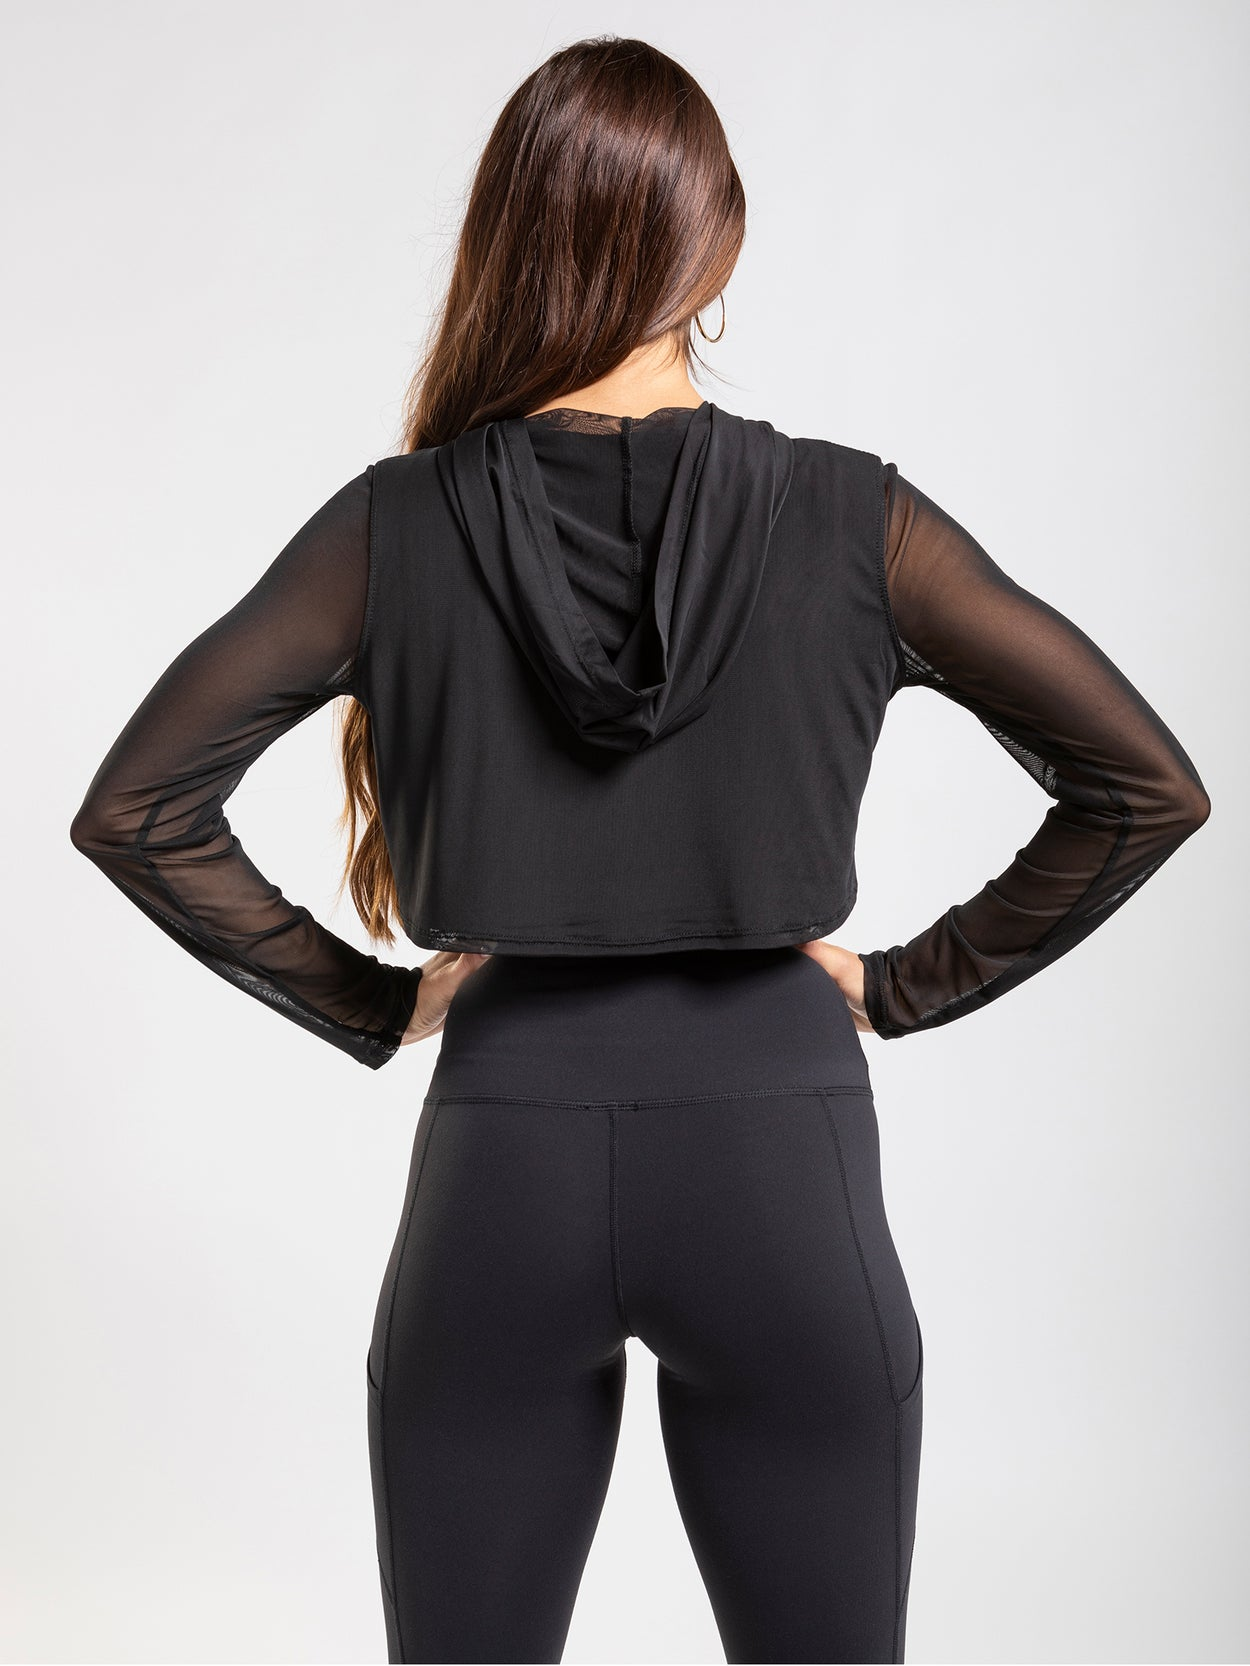 Black, mesh, hooded, pullover top with sheer long sleeves.